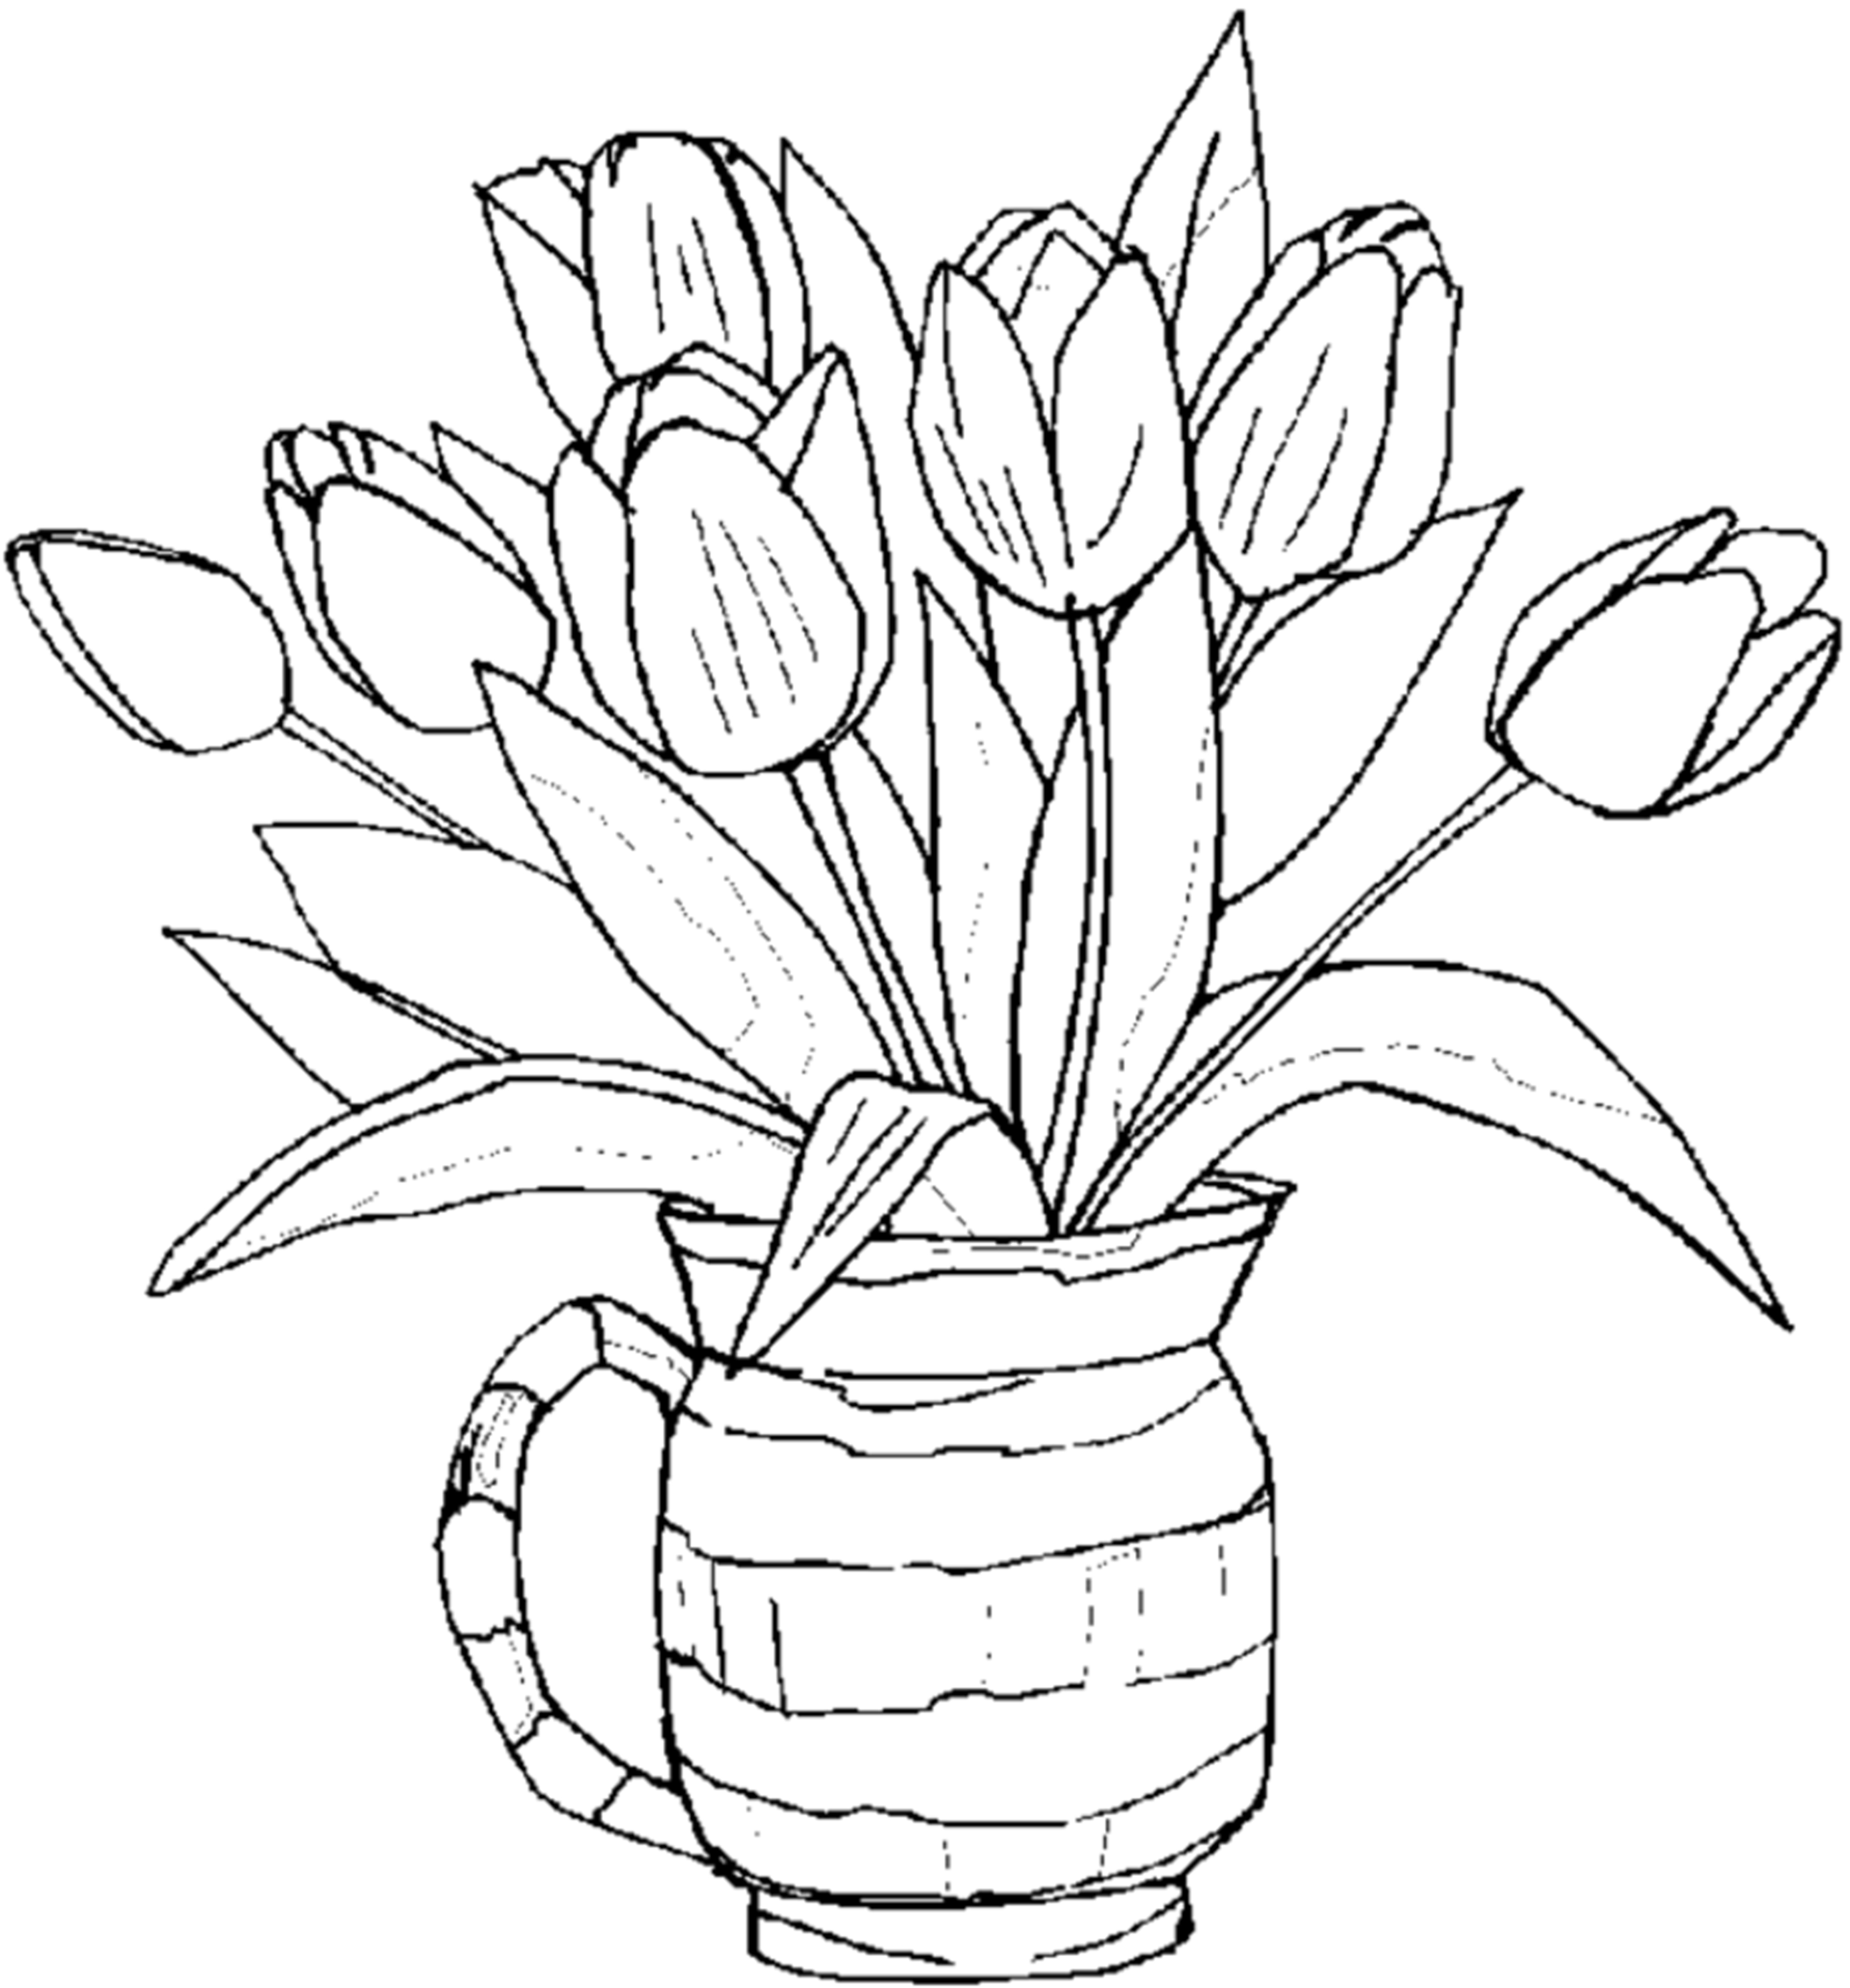 flower coloring pages for kids free printable flower coloring pages for kids best pages coloring kids flower for